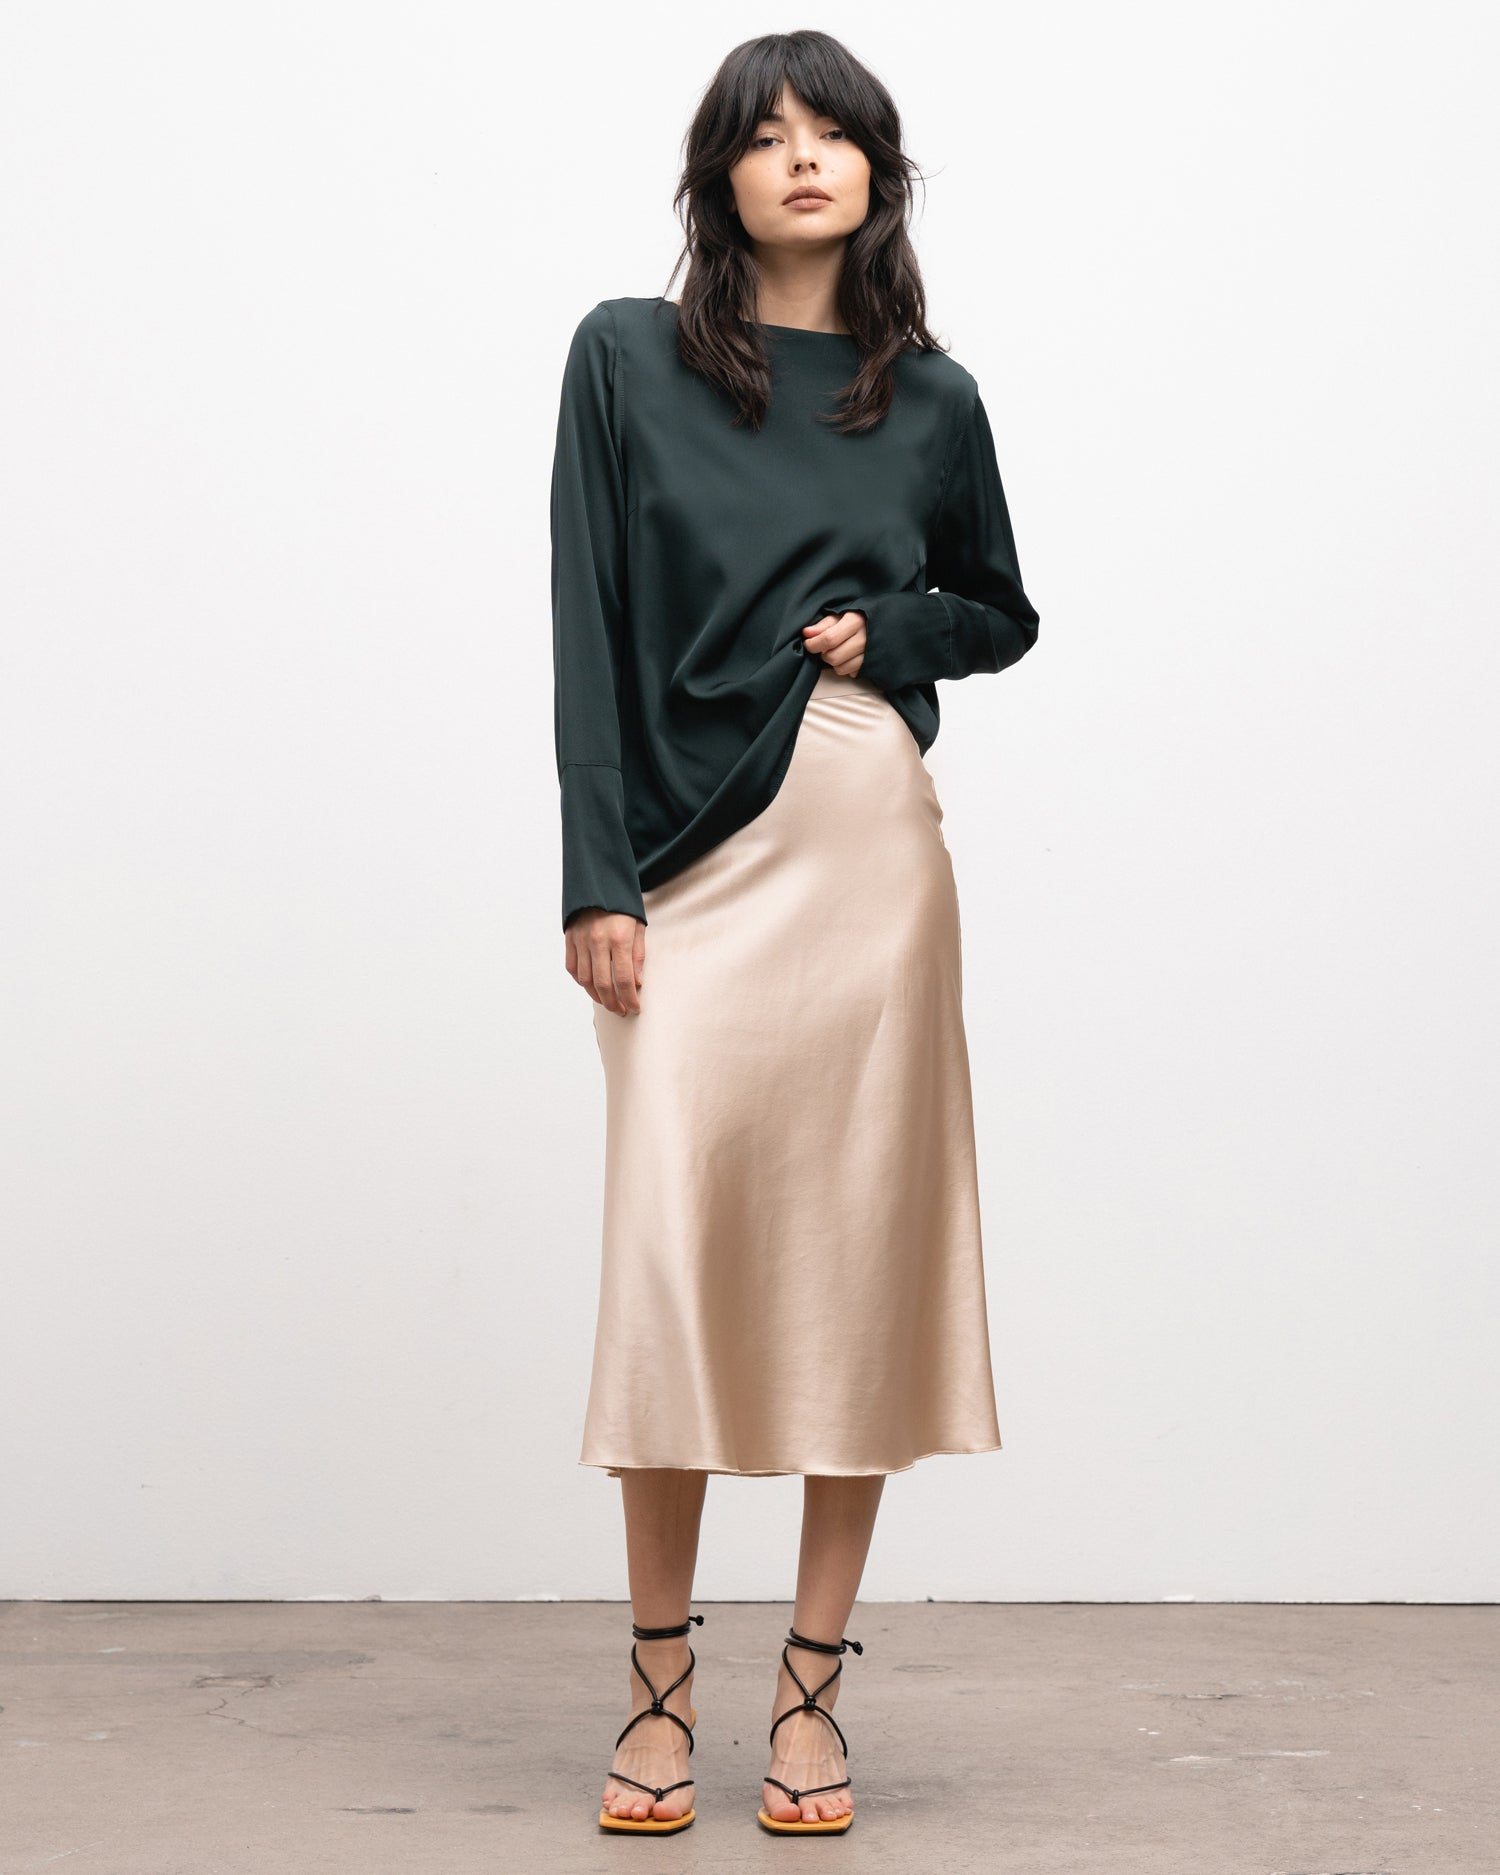 Ahlvar Gallery Hana satin skirt powder